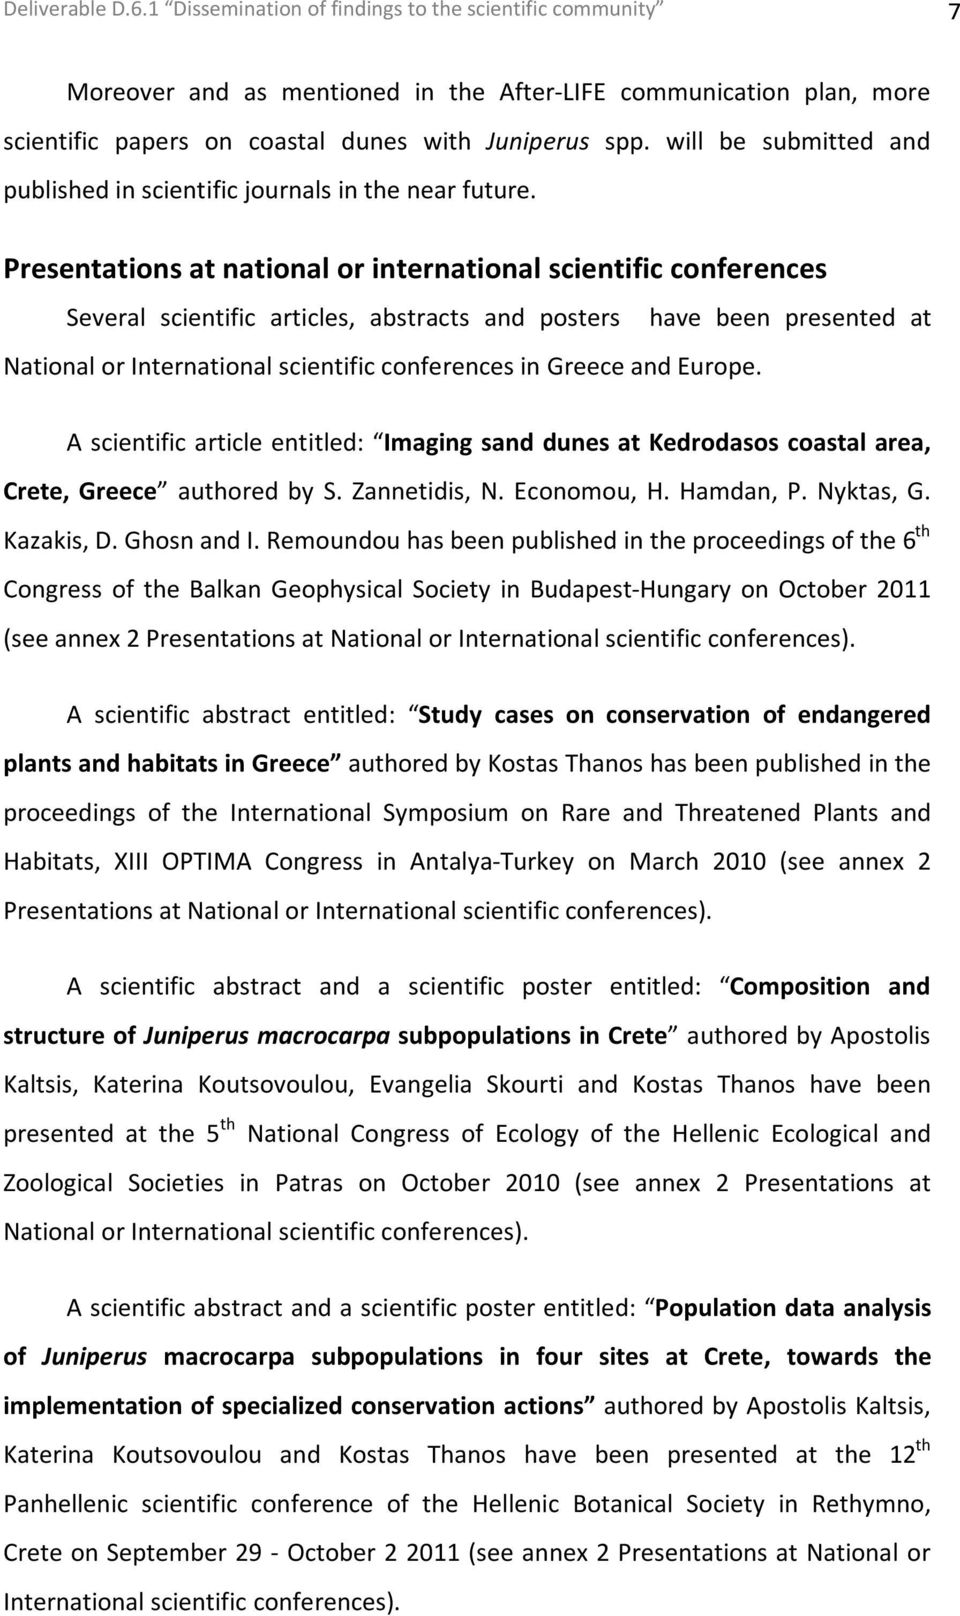 Presentations at national or international scientific conferences Several scientific articles, abstracts and posters have been presented at National or International scientific conferences in Greece